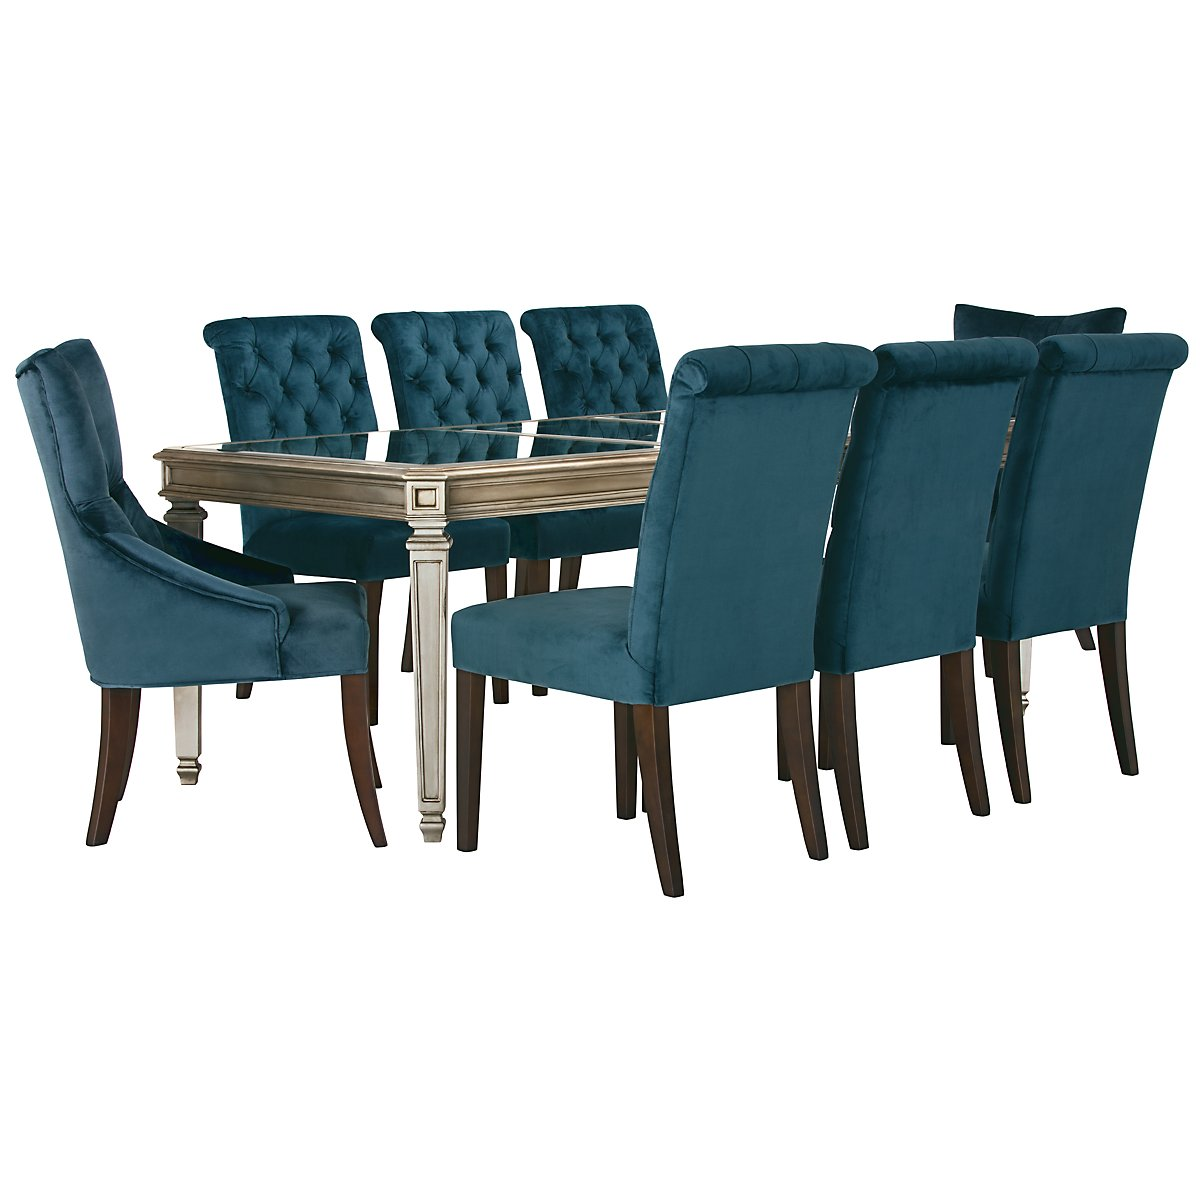 City Furniture Sloane Dk Blue Rectangular Table Upholstered Chairs - Rectangle table with 4 chairs